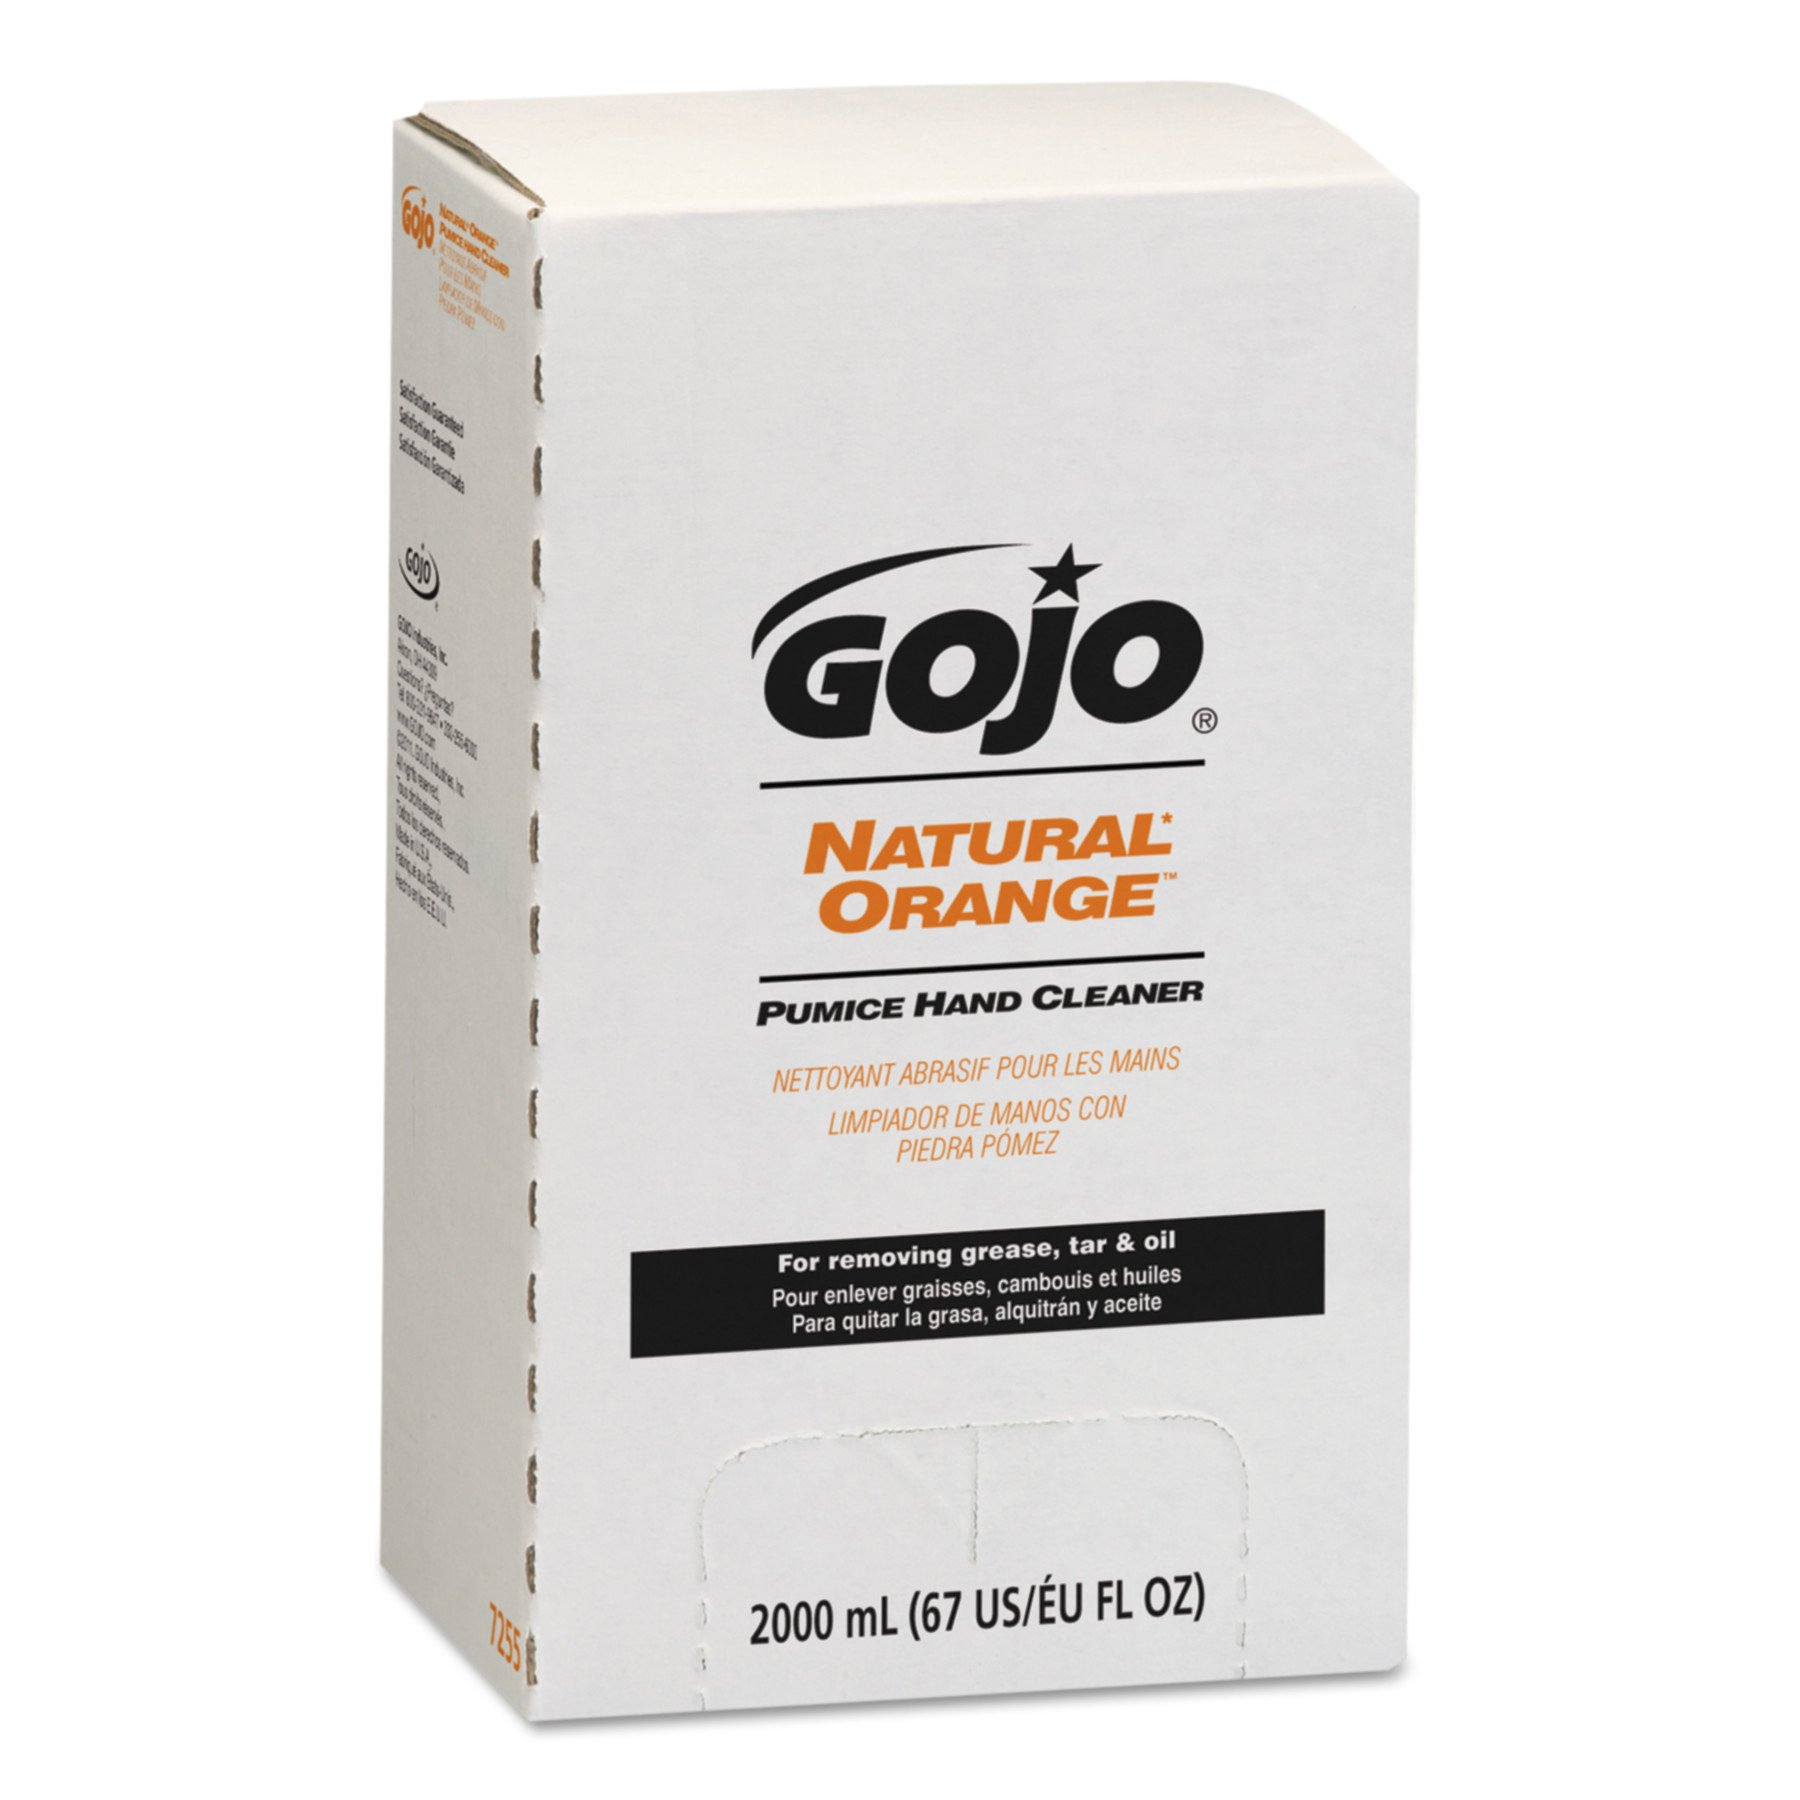 GOJO NATURAL ORANGE Pumice Hand Cleaner, 2000 mL Quick Acting Lotion Hand Cleaner with Pumice Refill for GOJO PRO TDX Dispenser (Pack of 4) - 7255-04 by Gojo